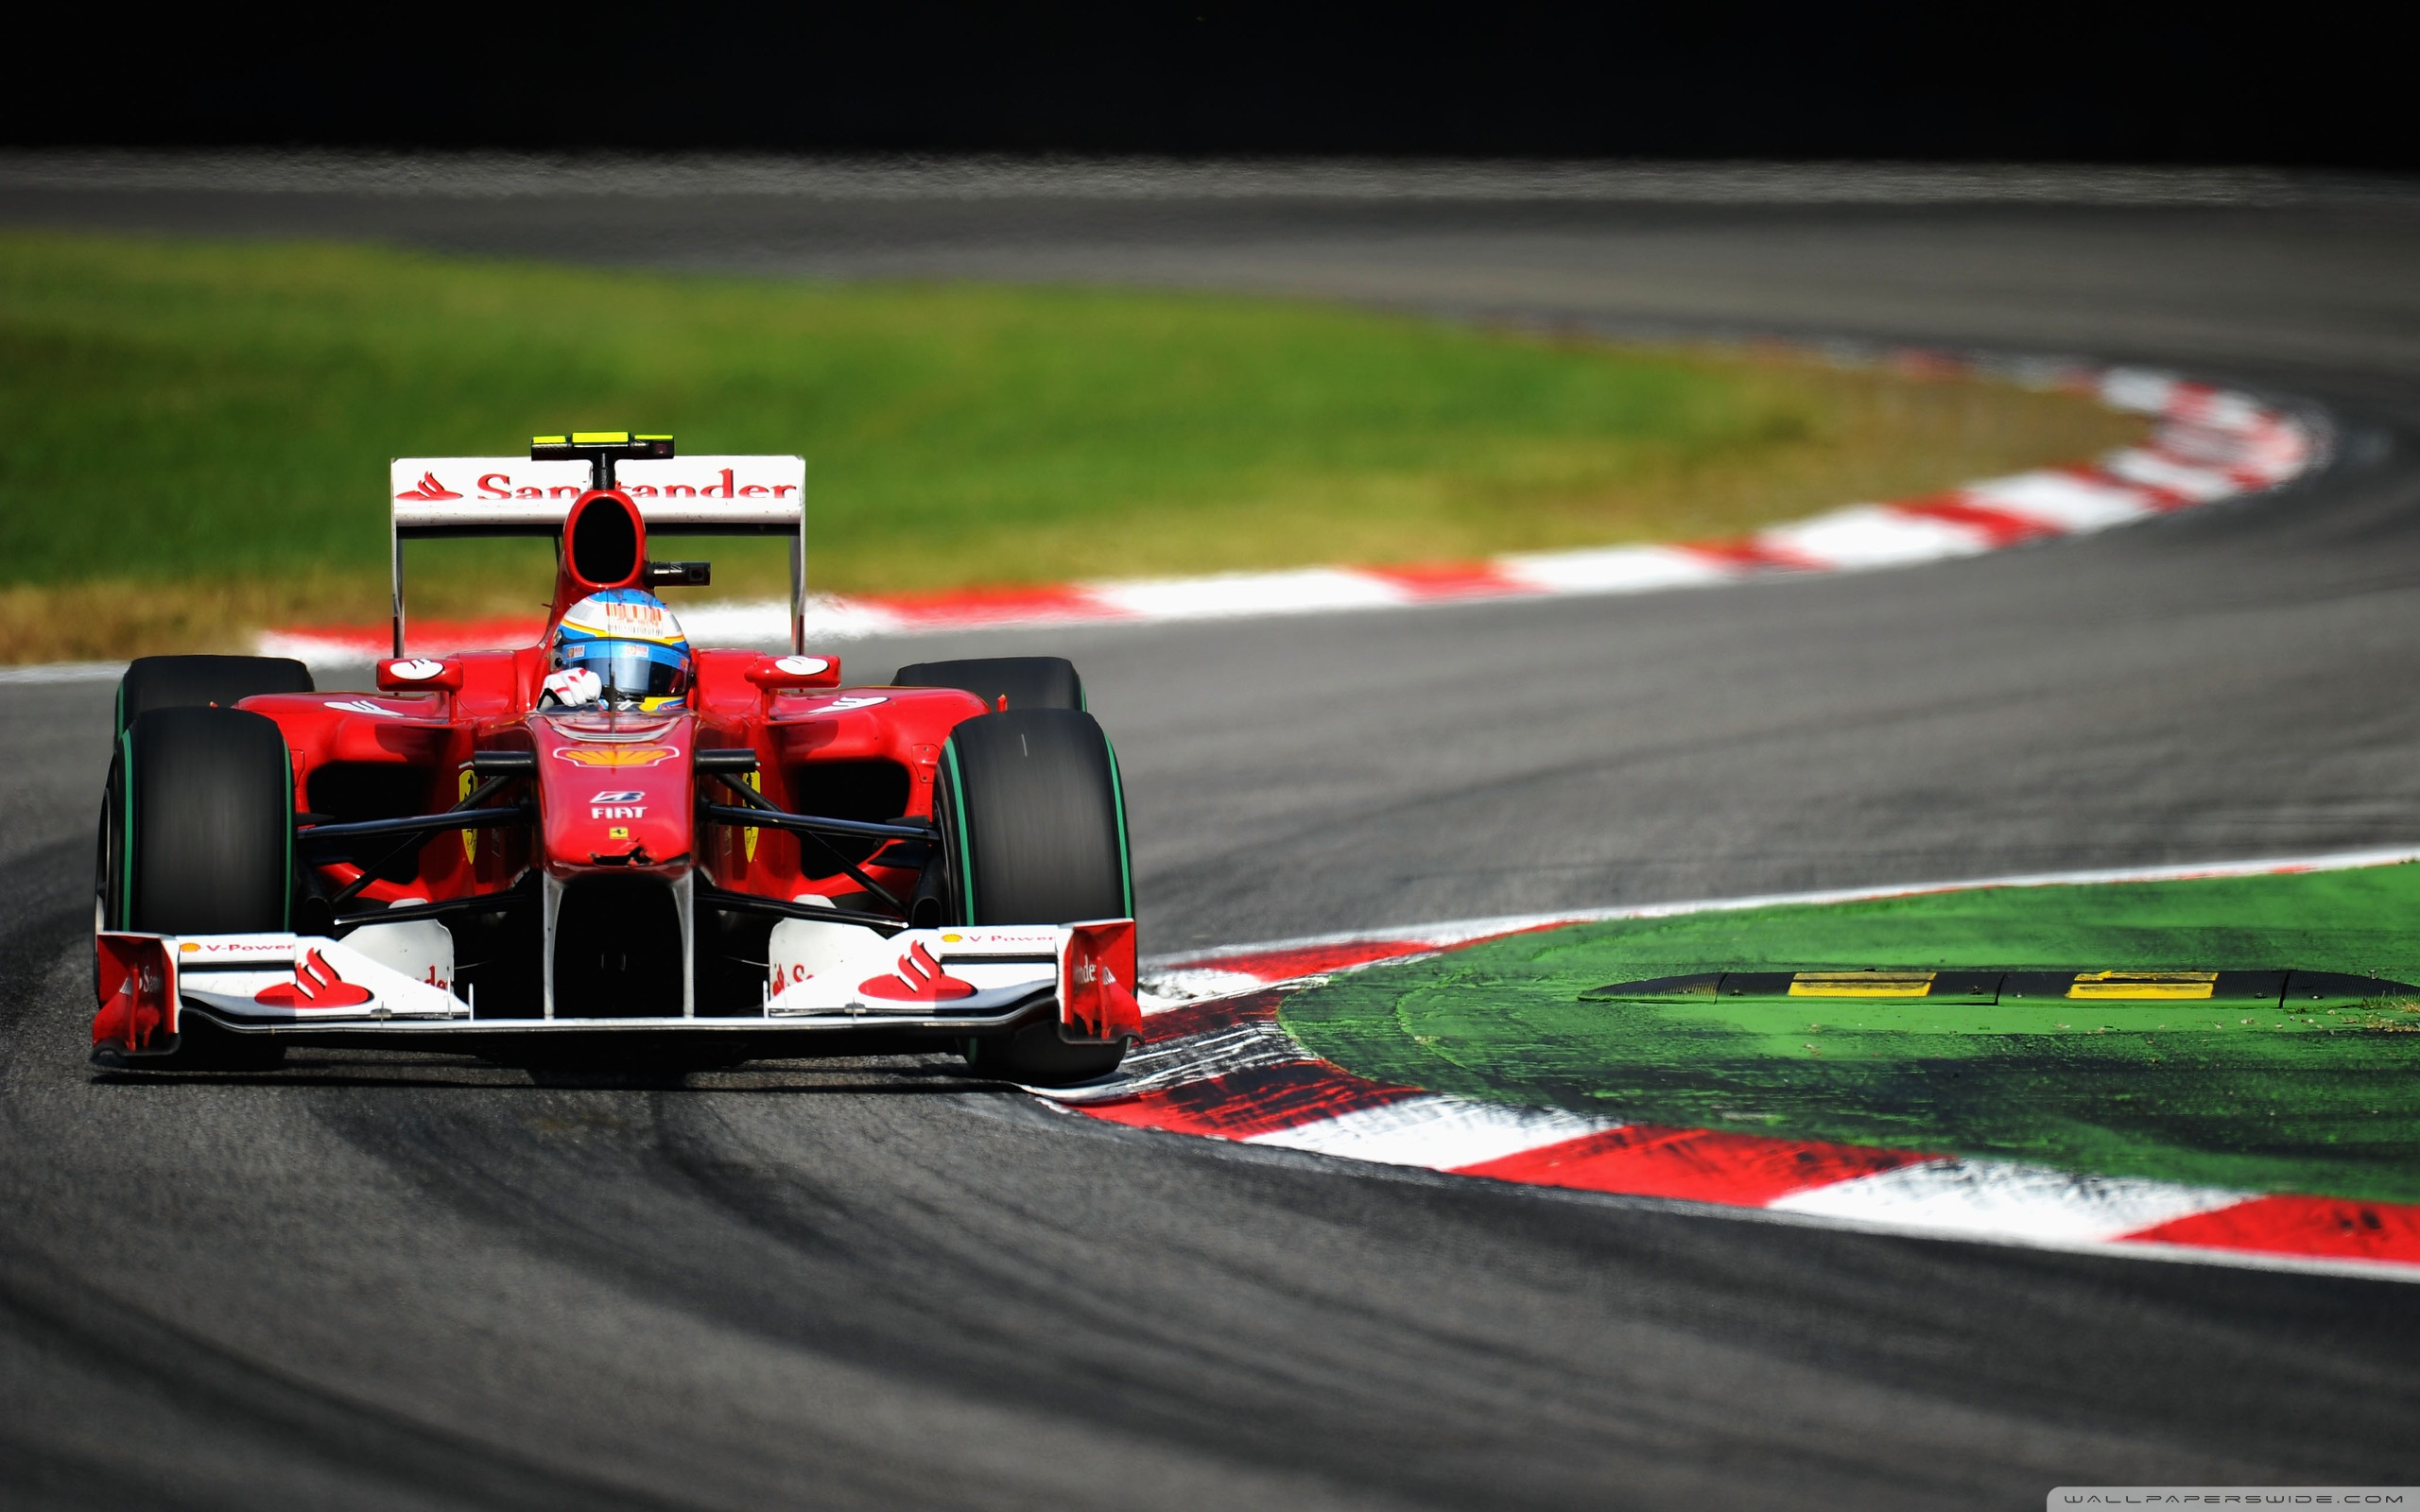 Fast car Formula 1 Auto Sport wallpapers and images 2560x1600